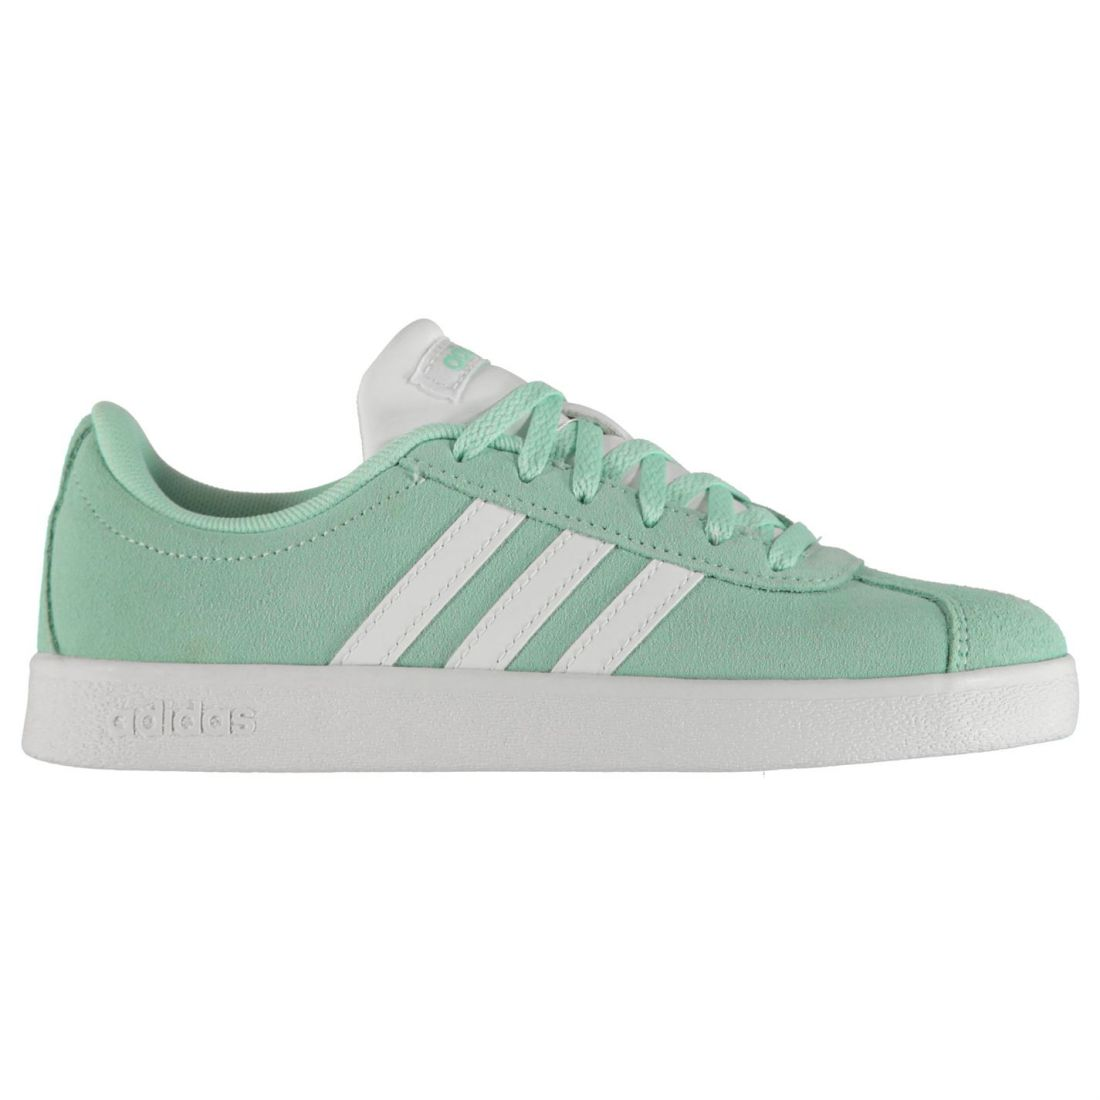 d4b6d59ccaa0 adidas Kids Girls VL Court Suede Shoes Child Trainers Lace Up Casual  Comfortable